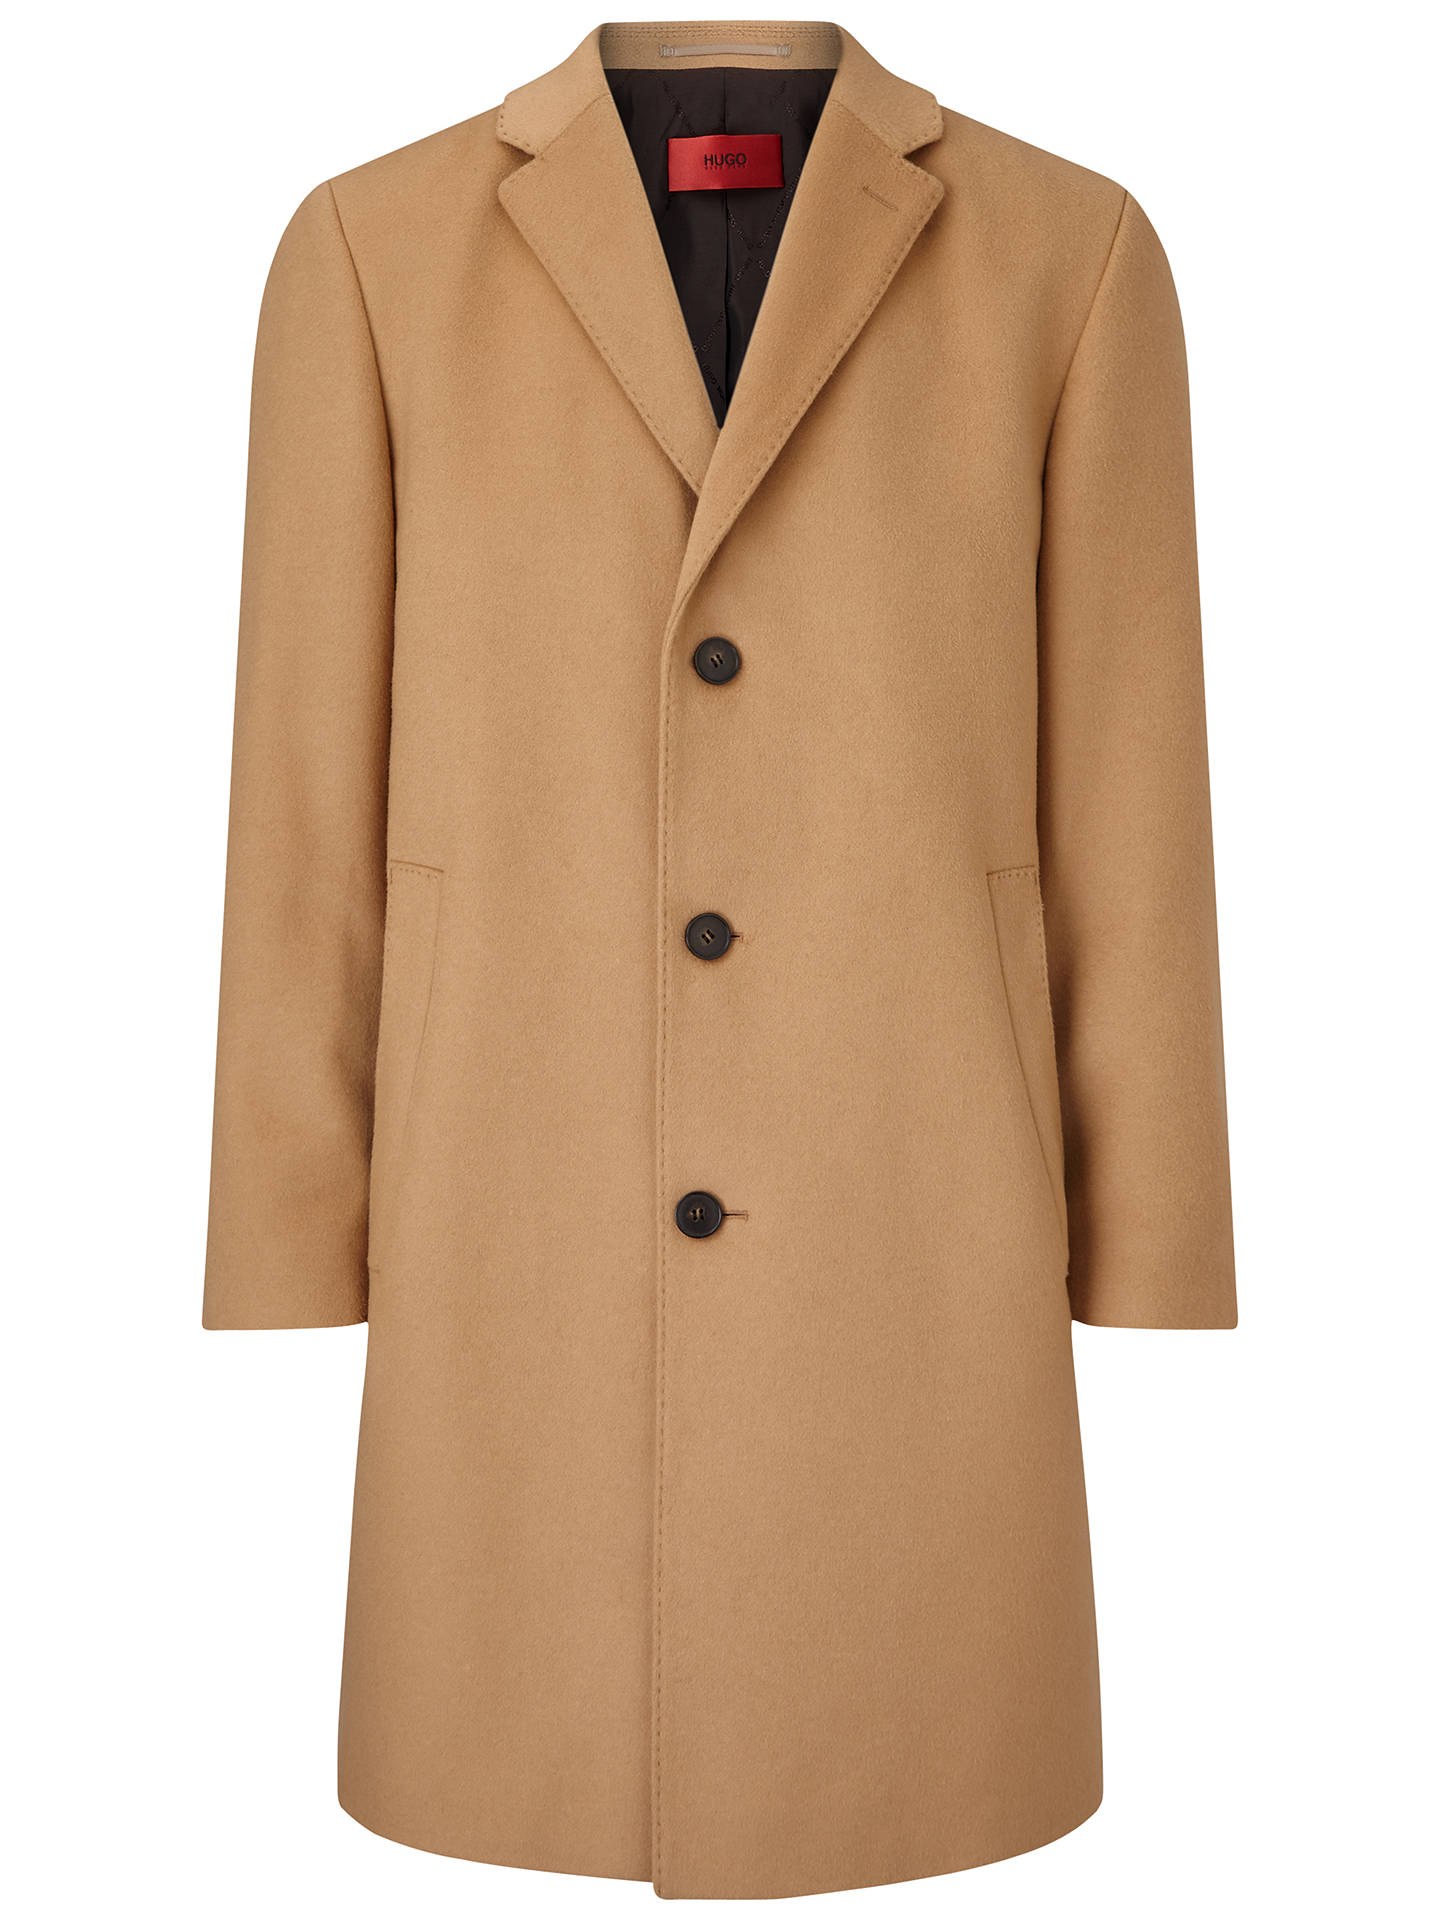 3d932c63c Buy HUGO by Hugo Boss Stratus Overcoat, Camel, 38R Online at johnlewis.com  ...